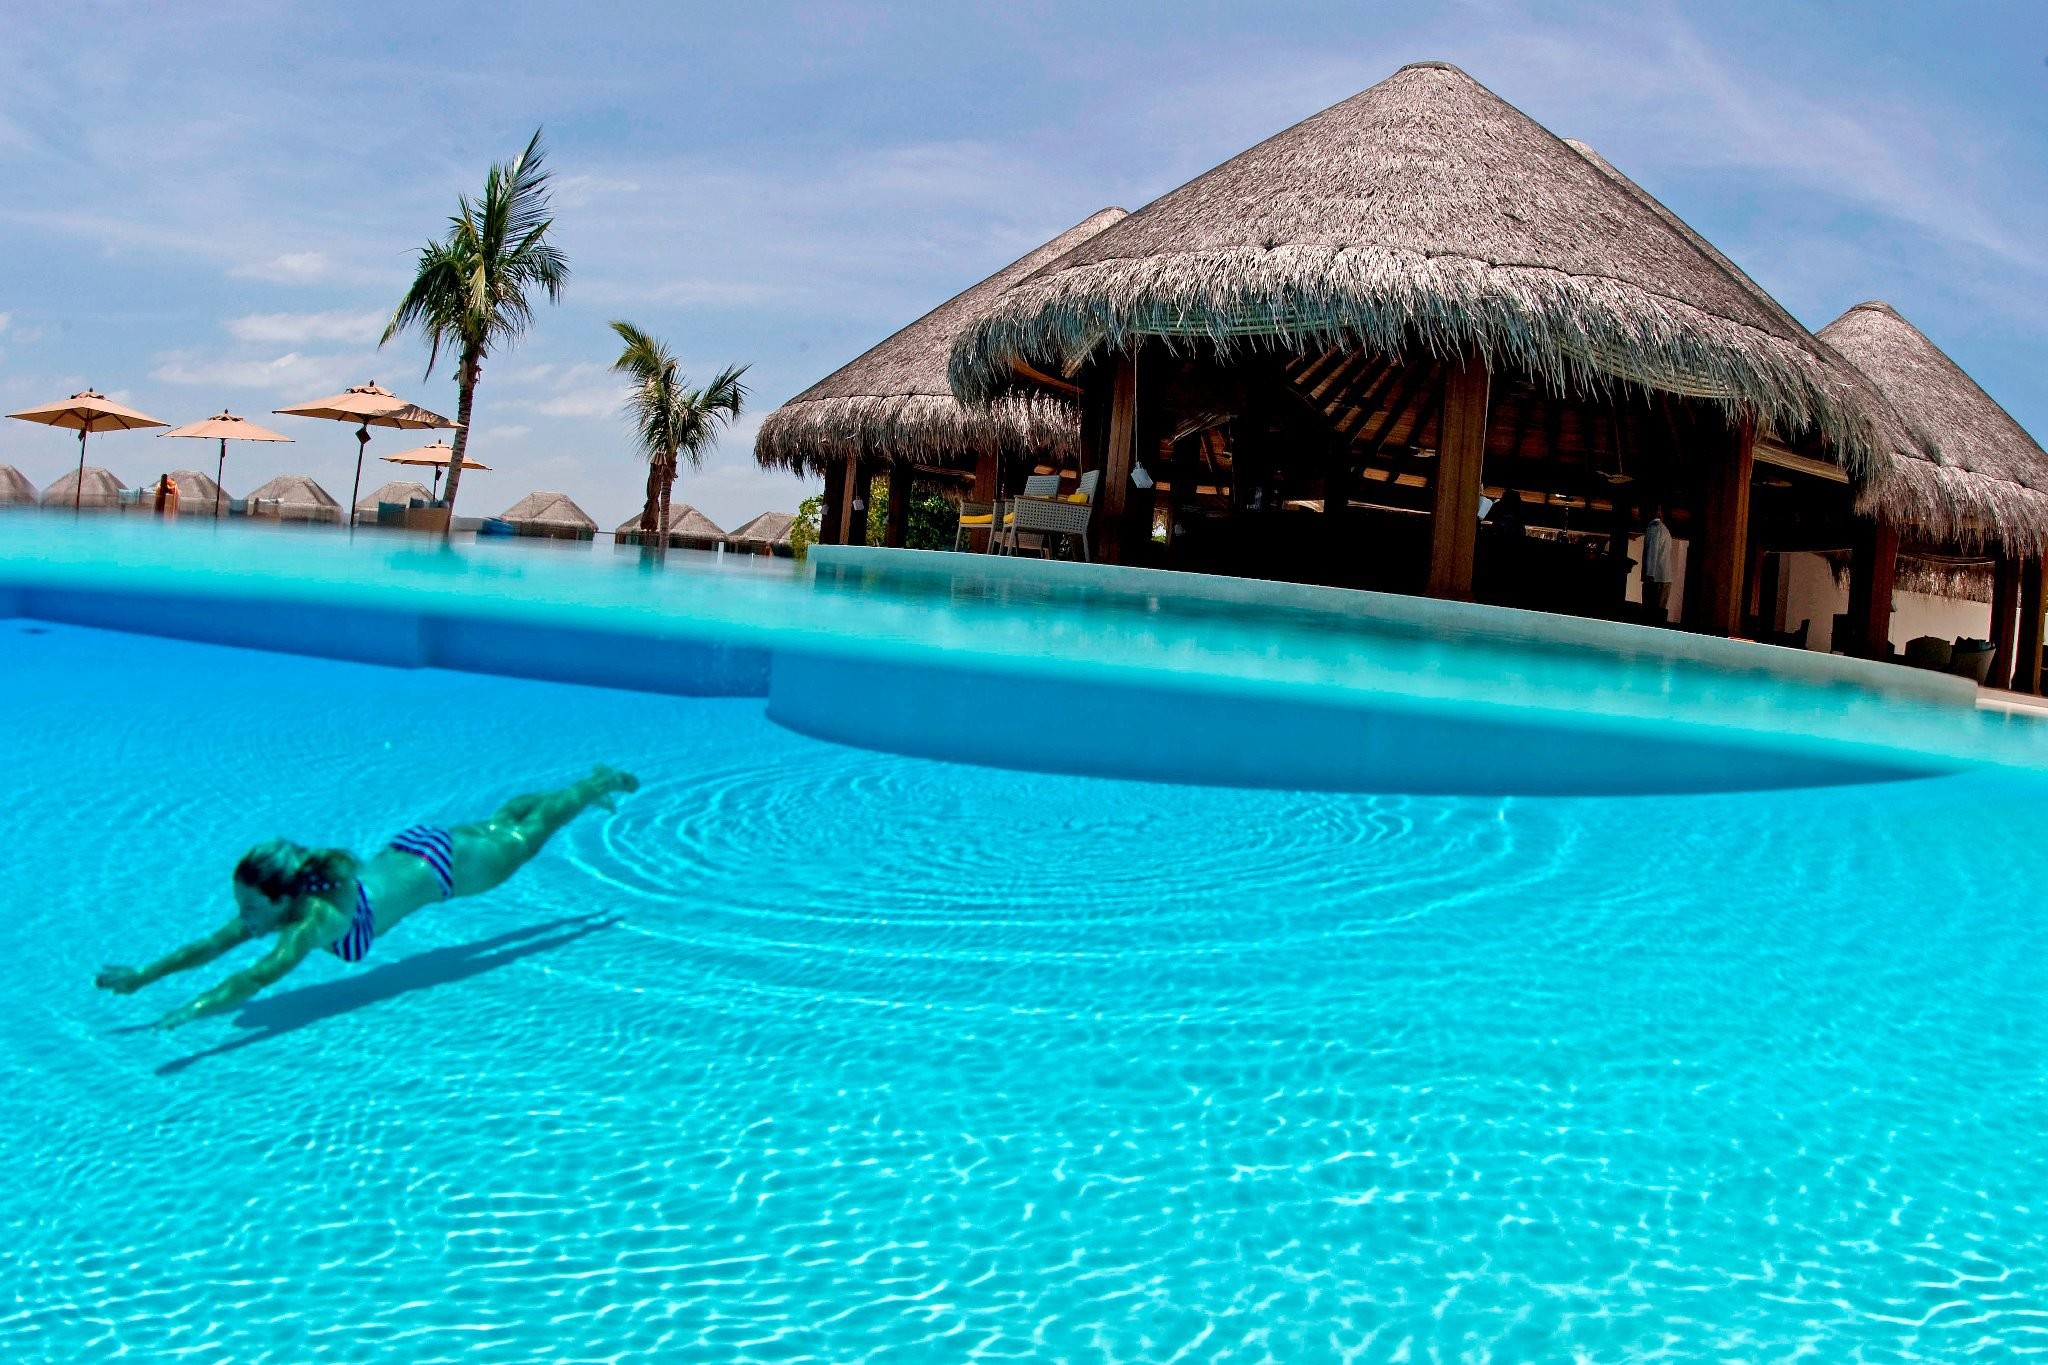 Clear blue azure swimming pool south polynesia wallpaper - How to make swimming pool water blue ...